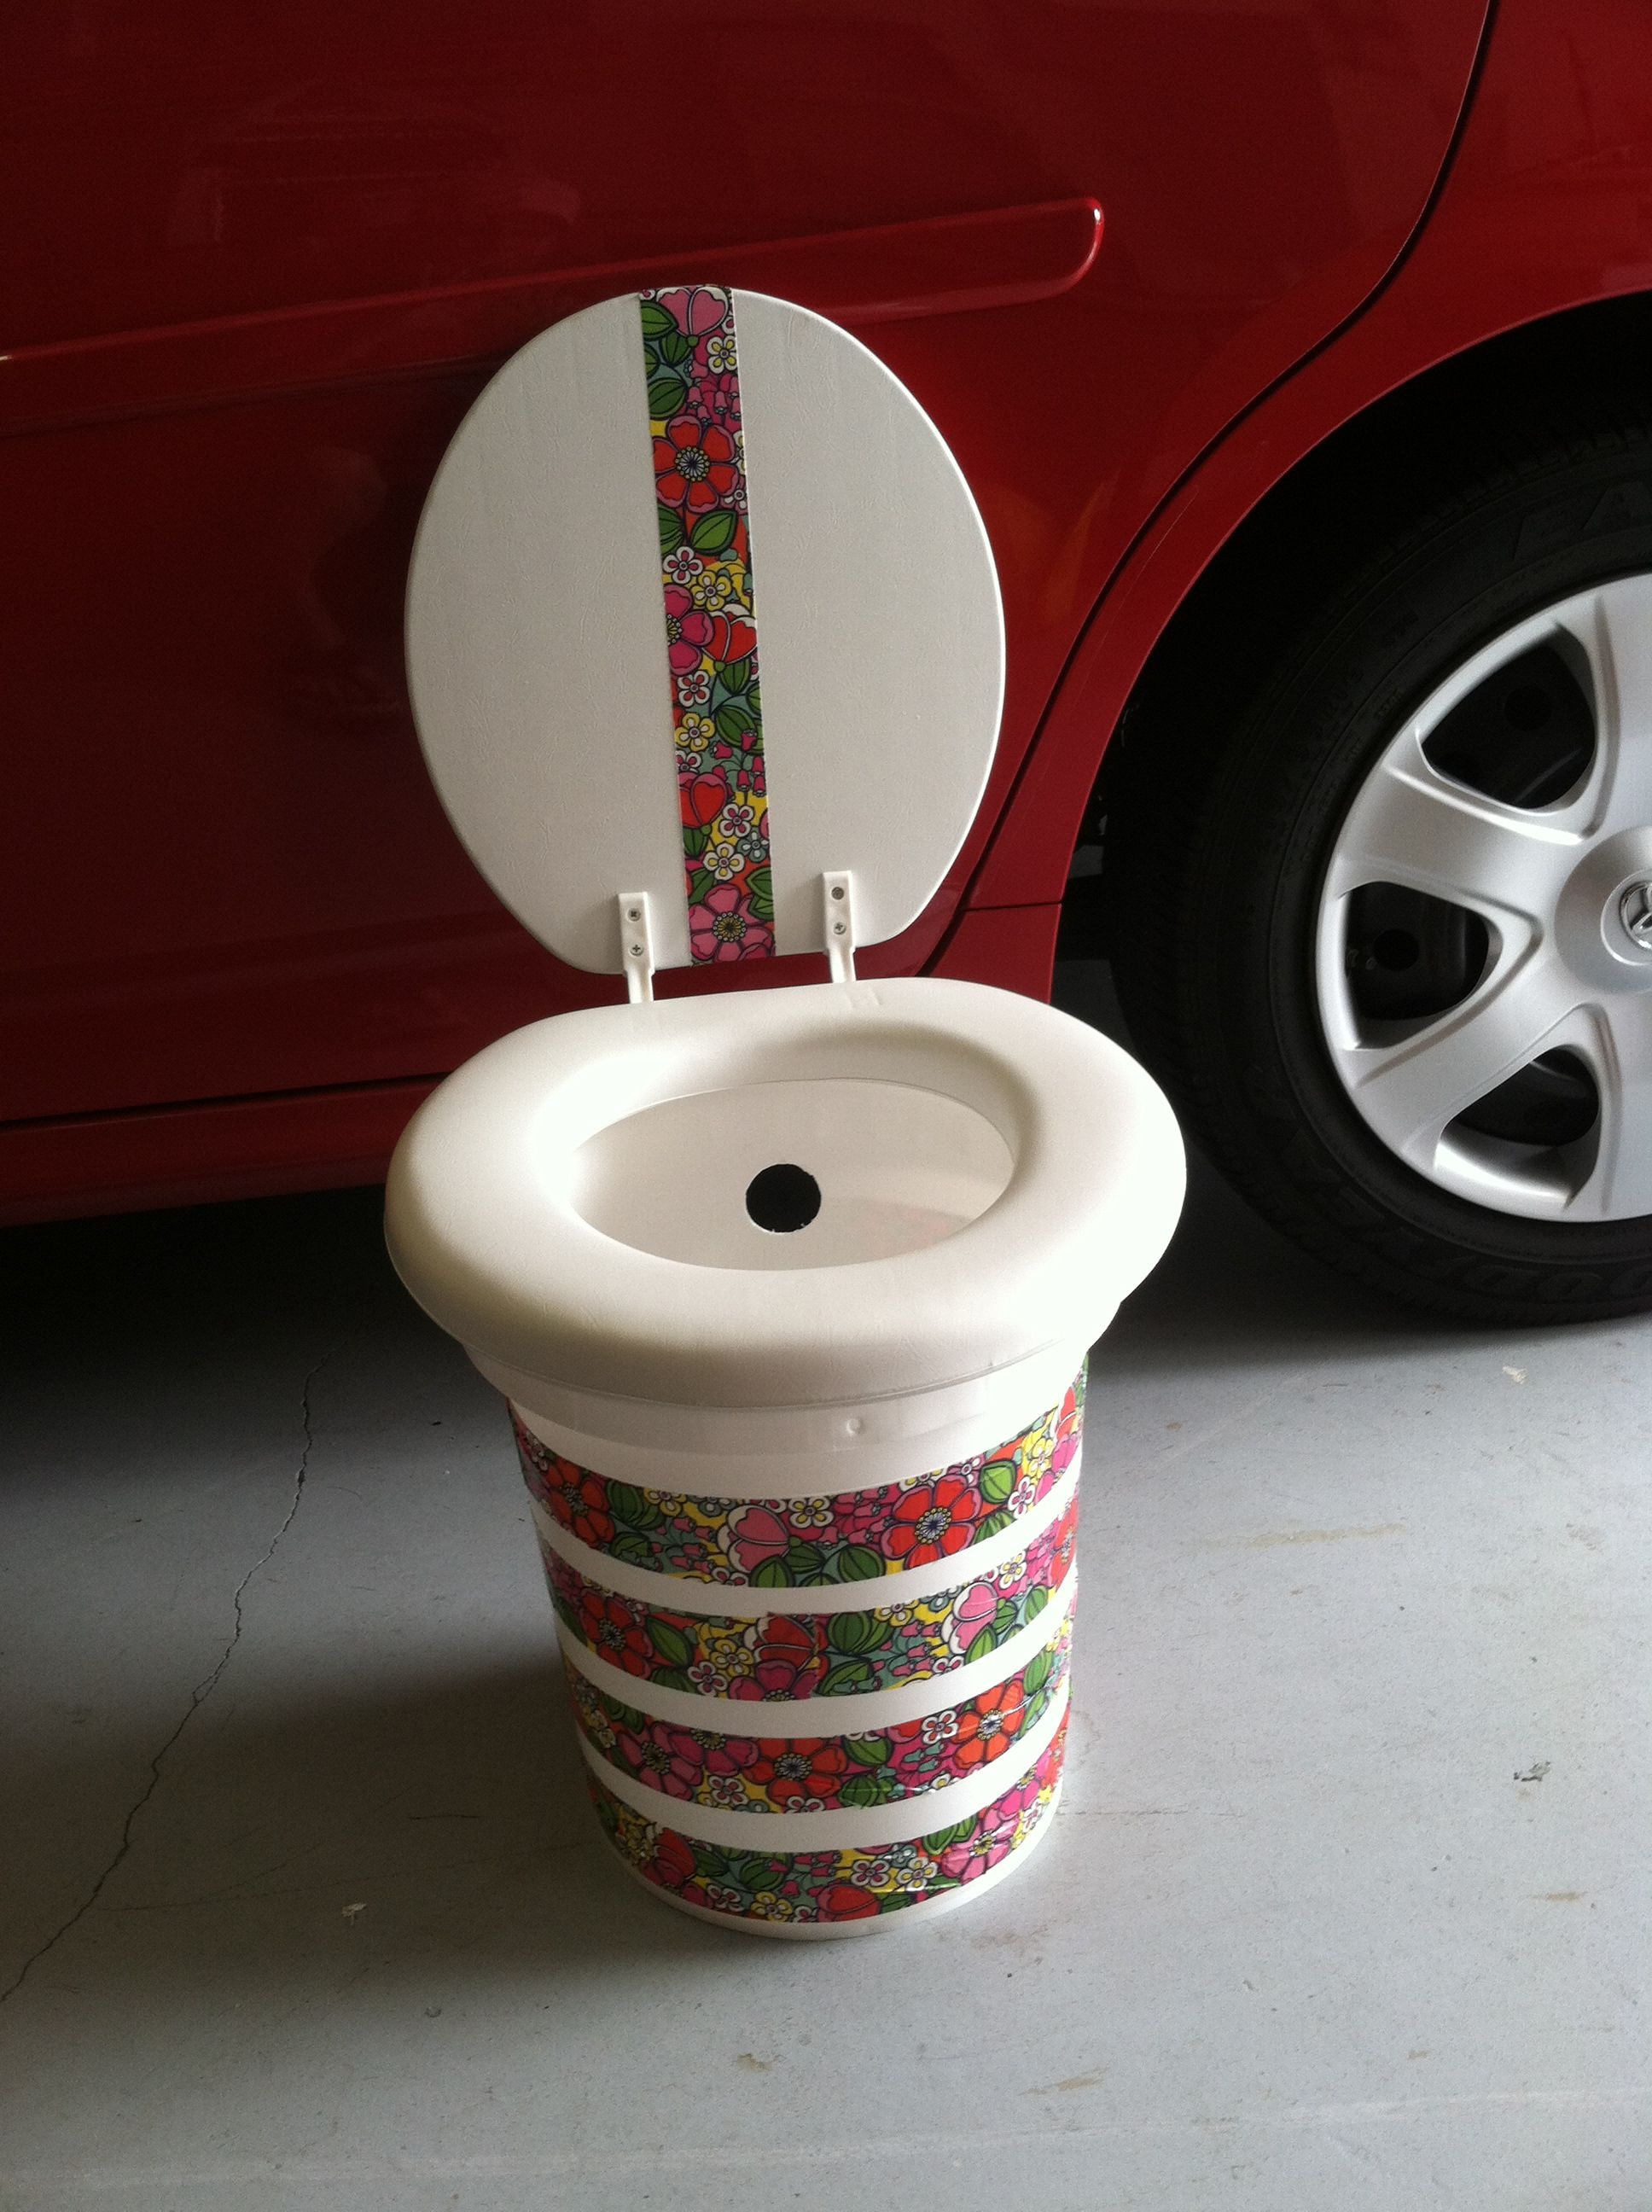 Boat Potty Made From Paint Bucket Toilet Seat And Decorative Duct Tape